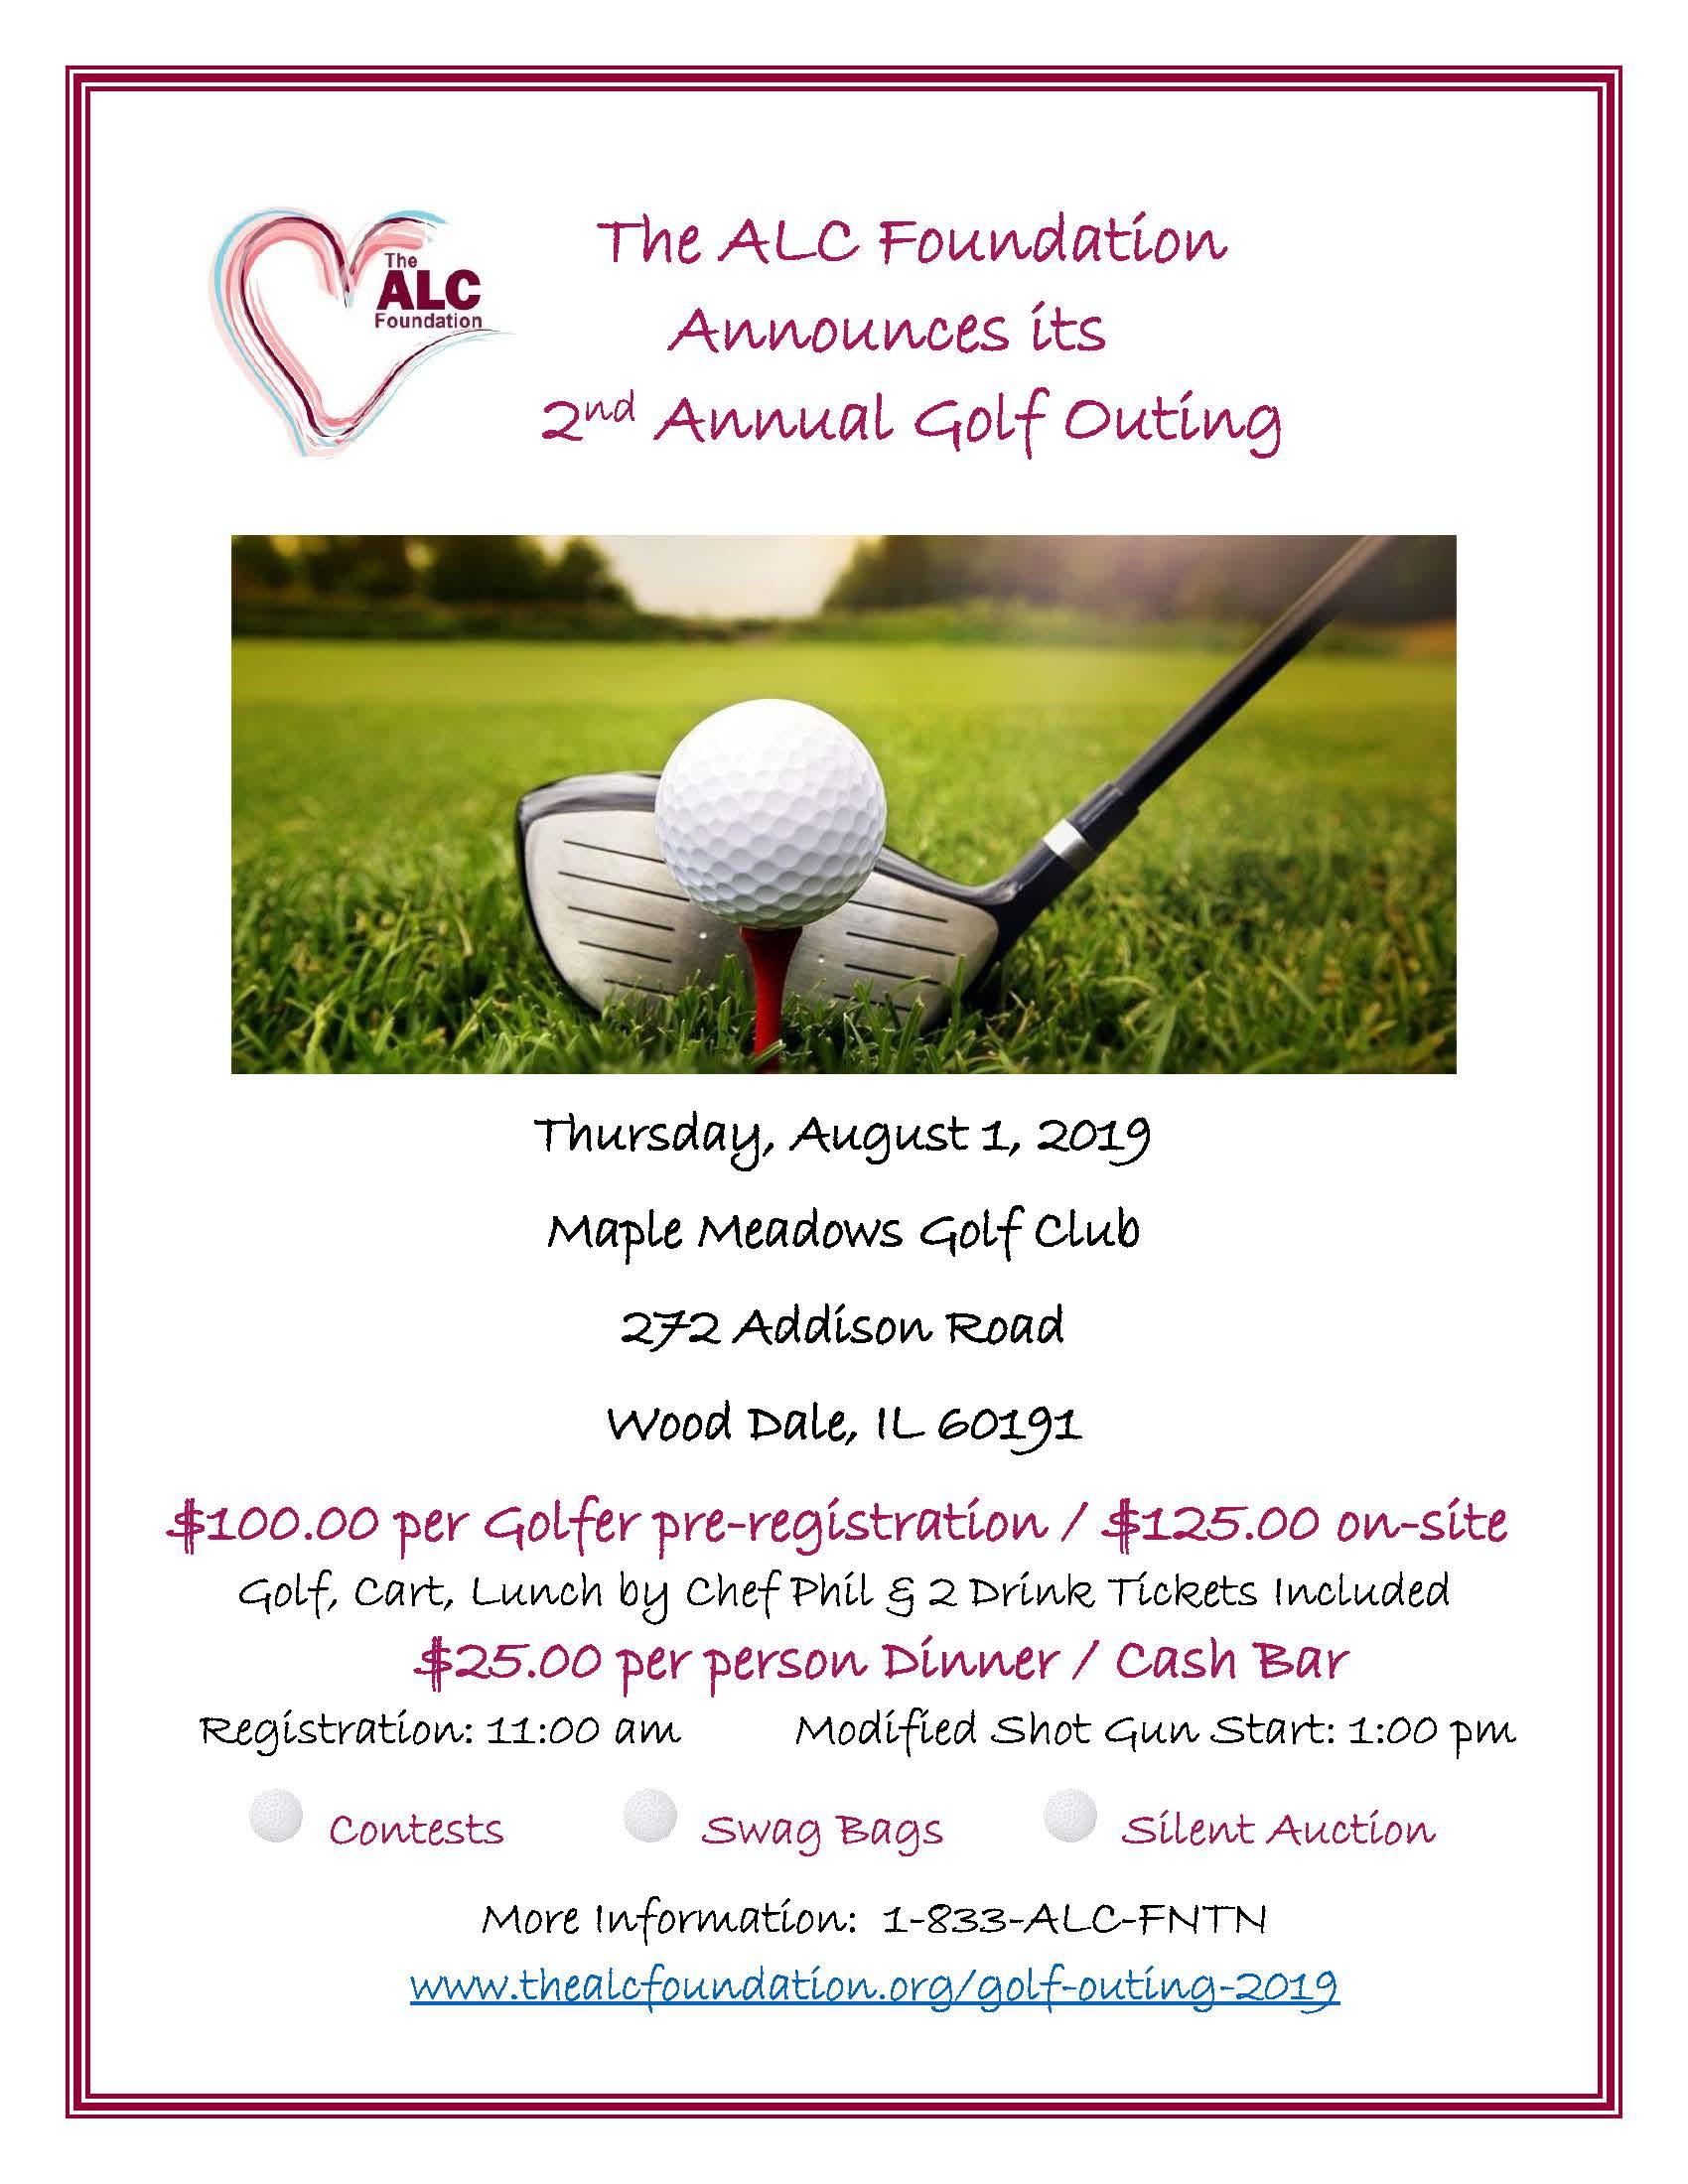 The ALC Foundation 2019 Golf Outing to Support Those in Need